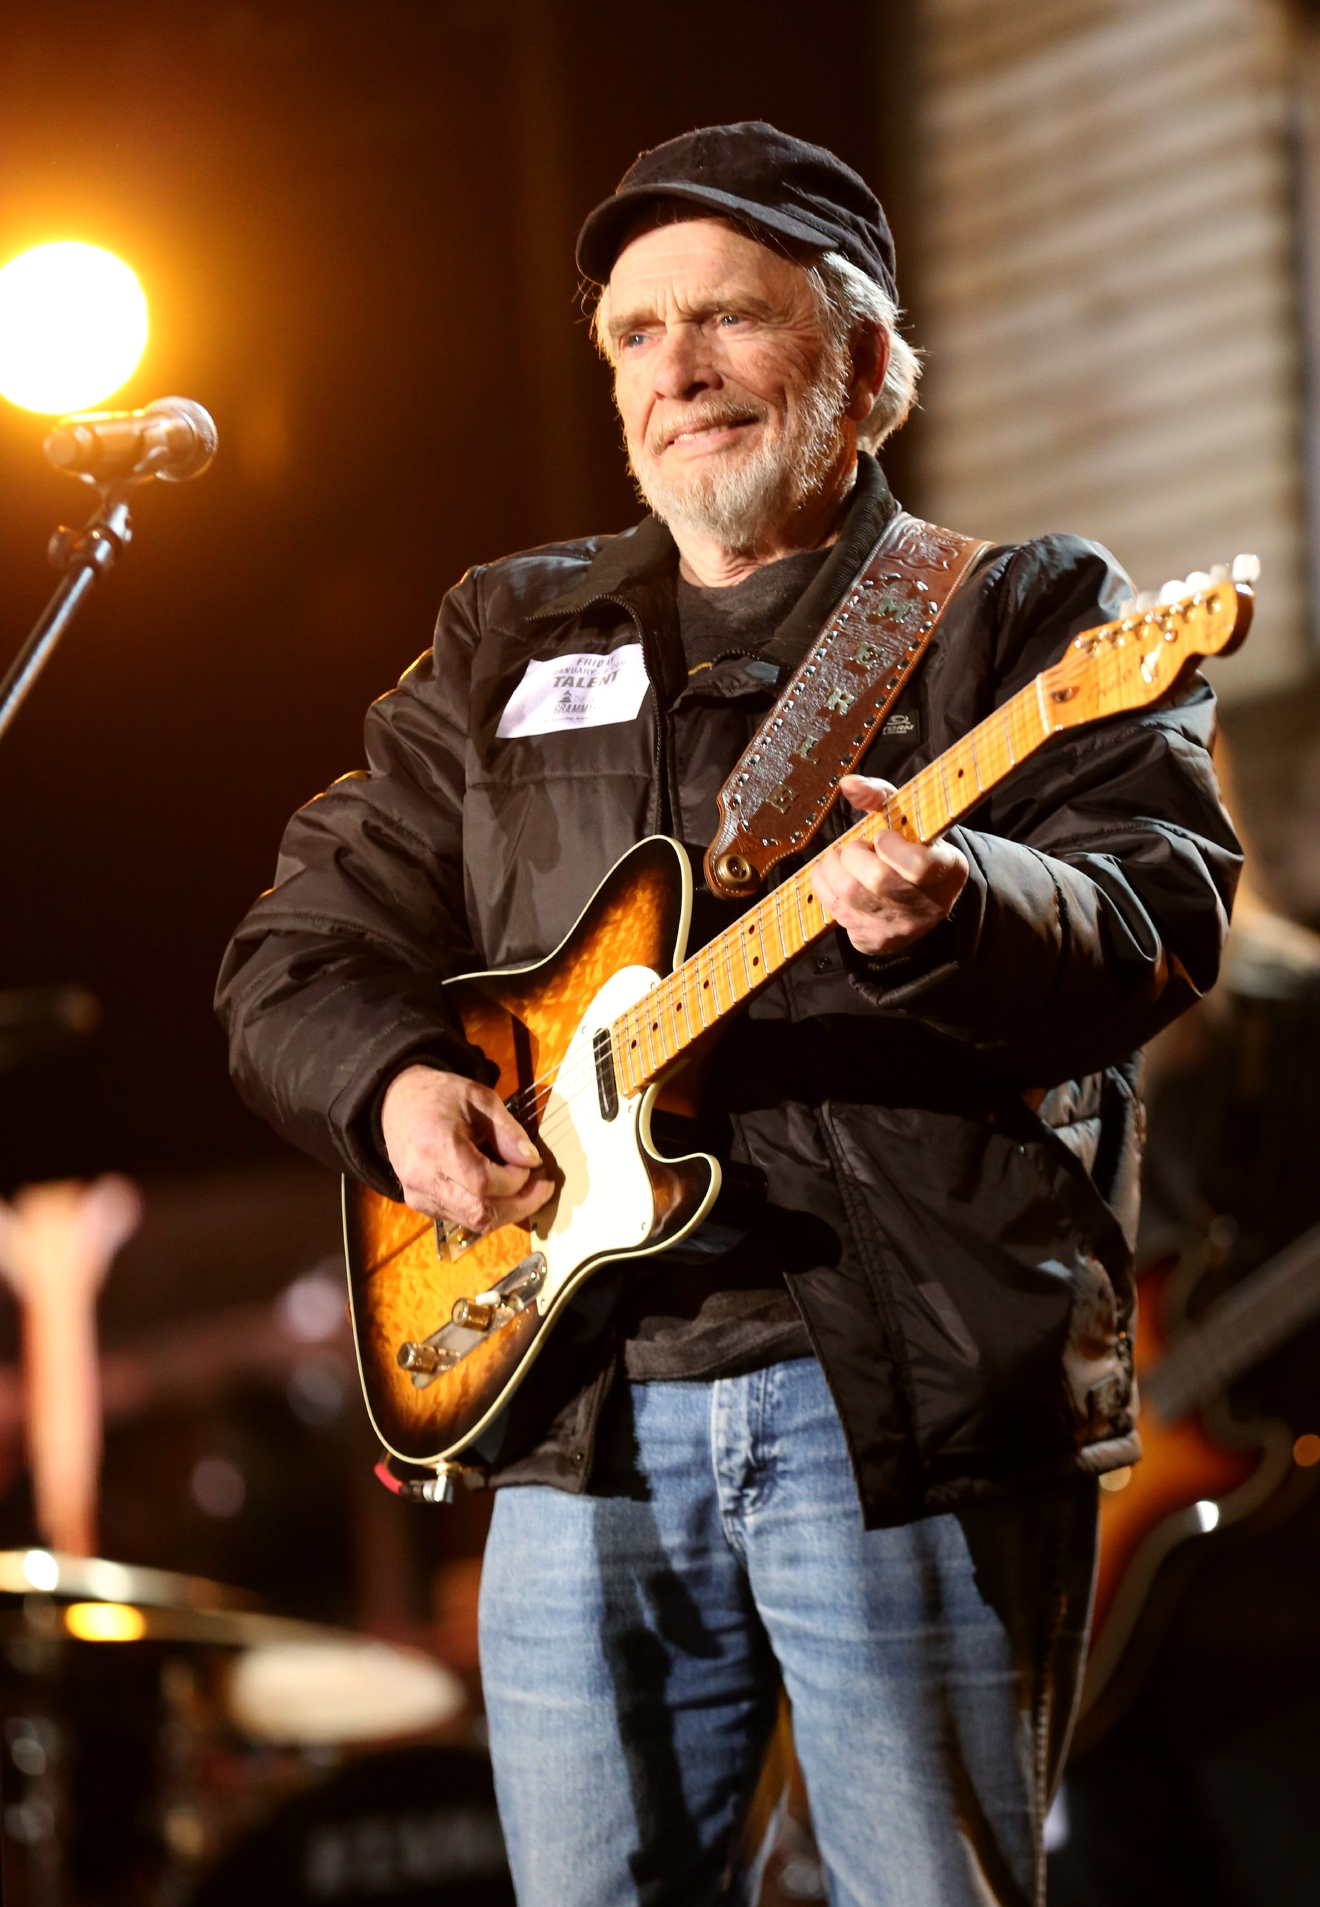 FILE - This Jan. 24, 2014 file photo shows country singer Merle Haggard during a rehearsal for the 56th Annual Grammy Awards in Los Angeles. Haggard died of pneumonia, Wednesday, April 6, 2016, in Palo Cedro, Calif. He was 79. (Photo by Matt Sayles/Invision/AP, File)